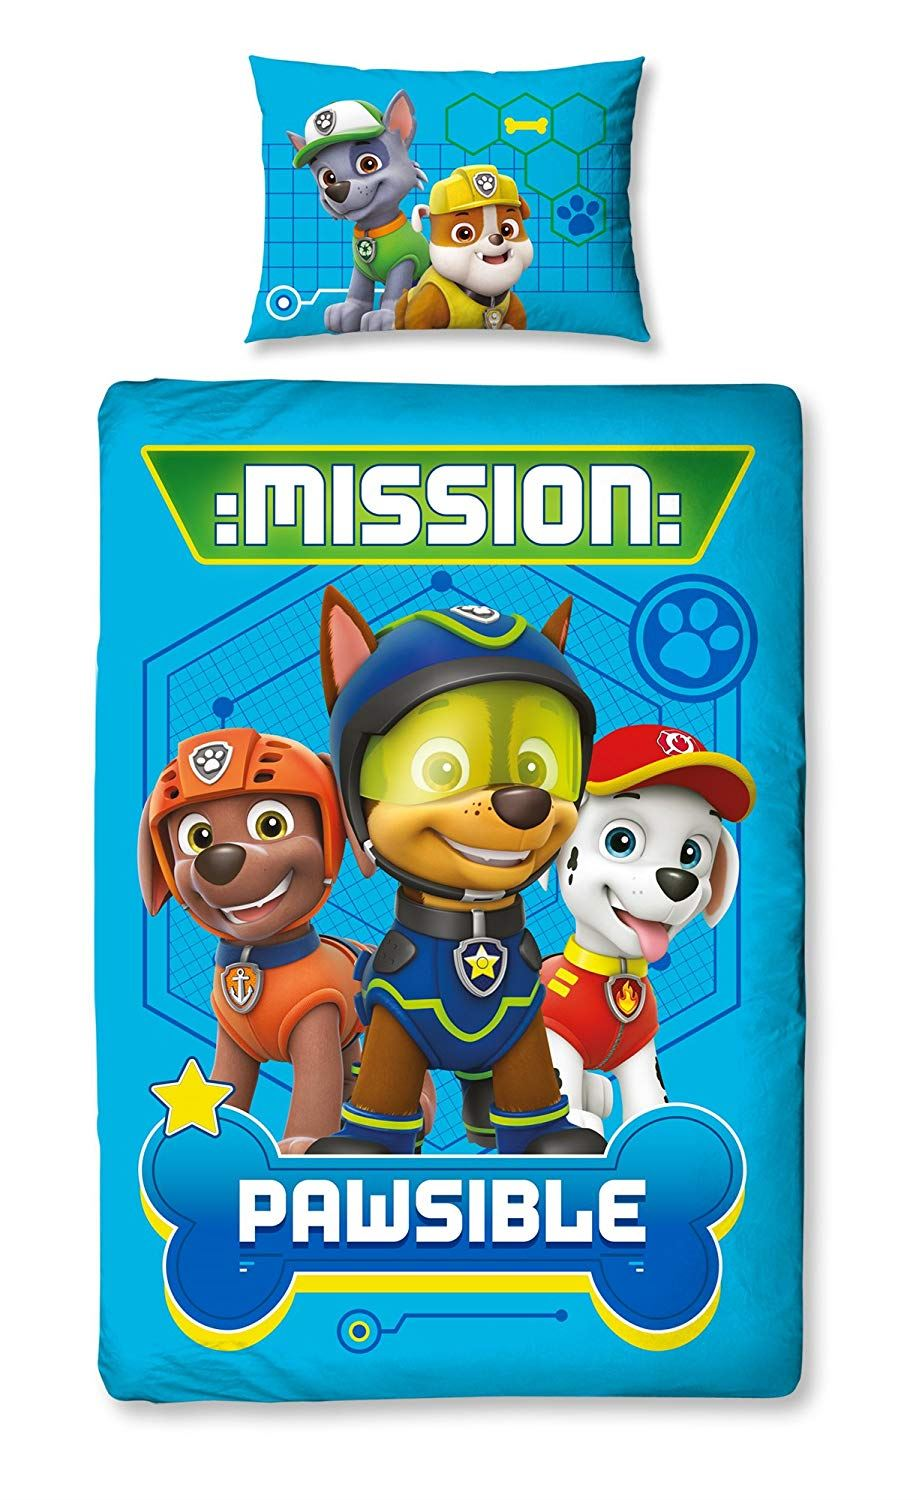 Official-Paw-Patrol-Licensed-Duvet-Covers-Single-Double-Chase-Skye-Marshall thumbnail 34